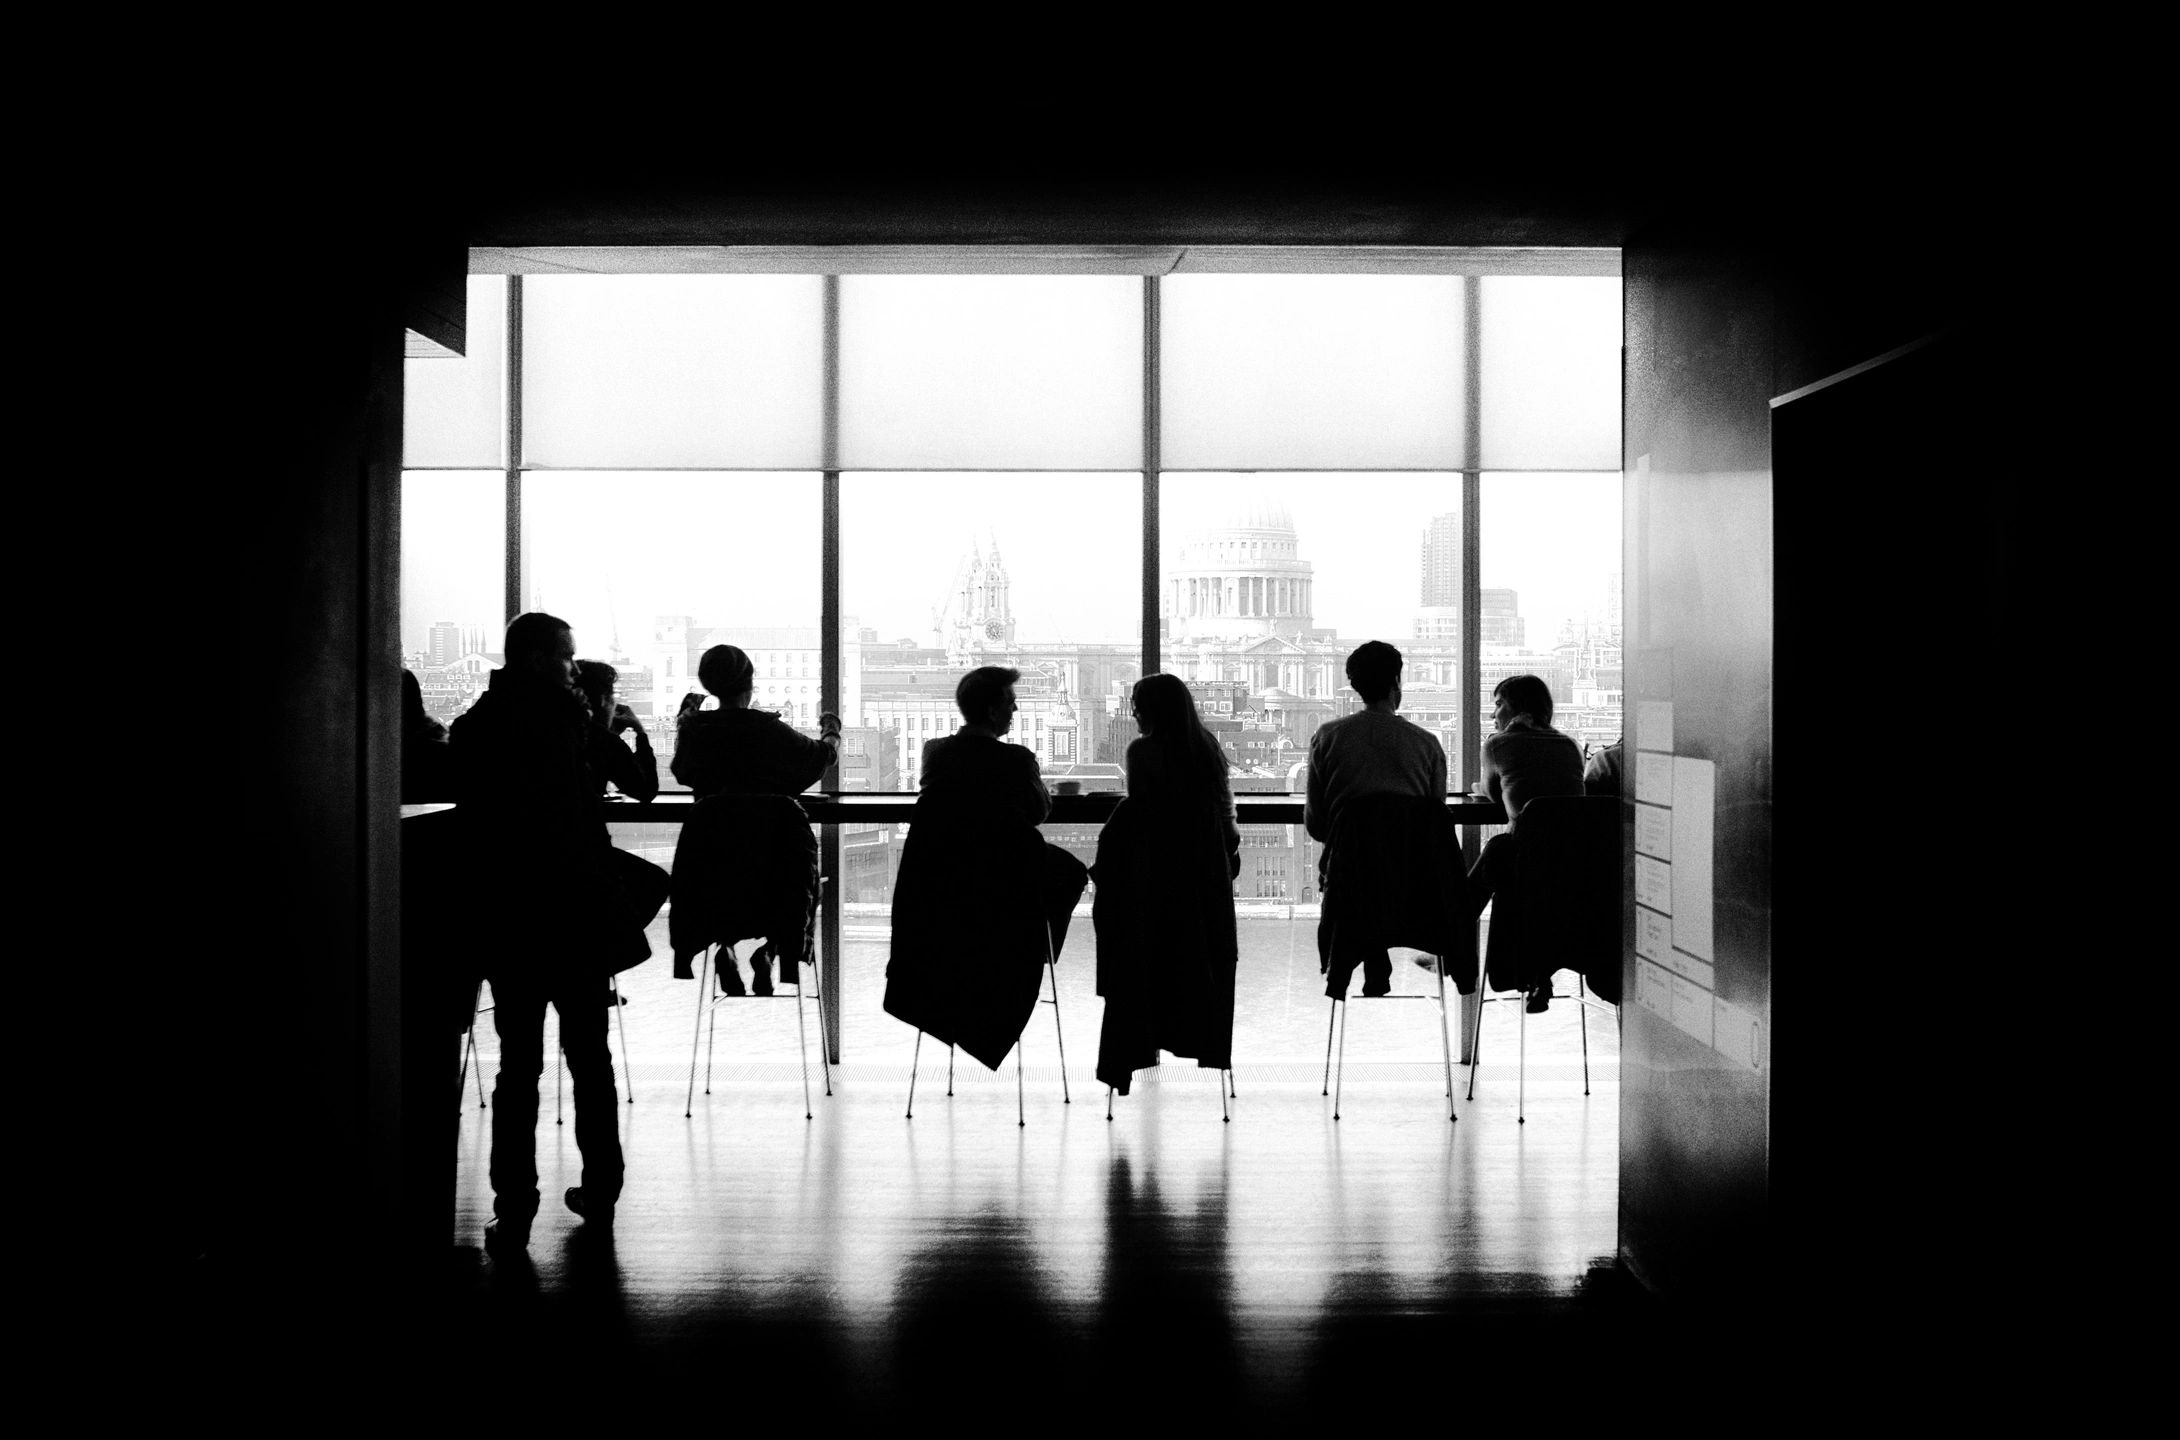 People sitting in chairs side by side in silhouette against a window.